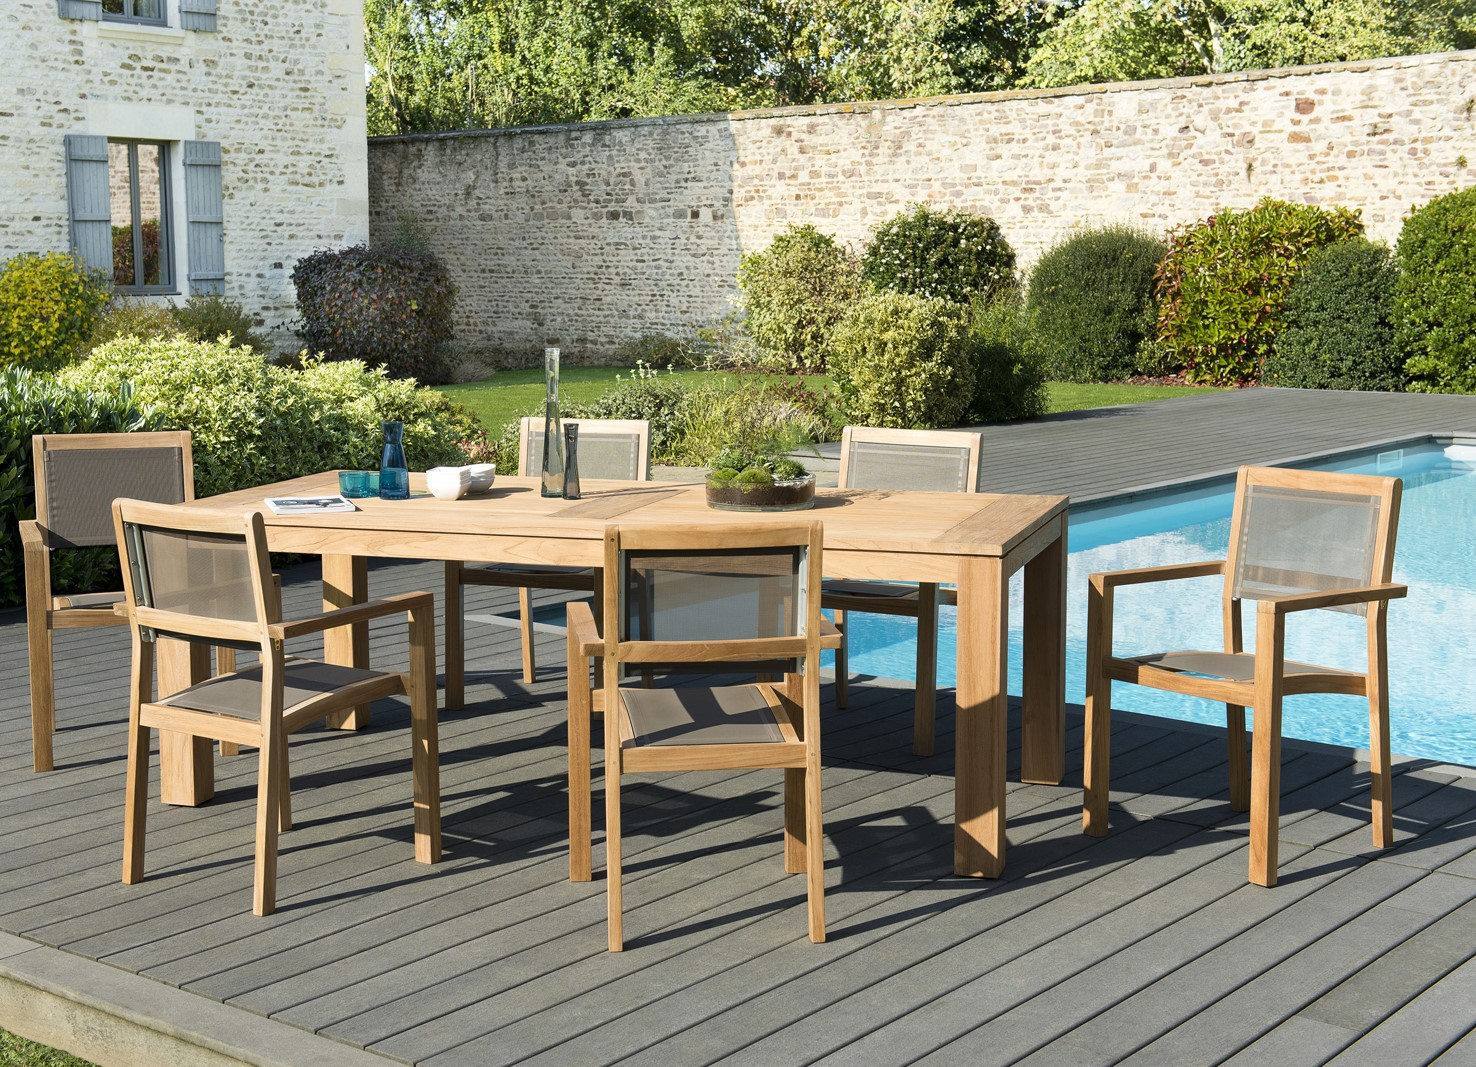 Salon de Jardin Teck Table 220x100 + 6 fauteuils empilables BERGEN ref.  30020837